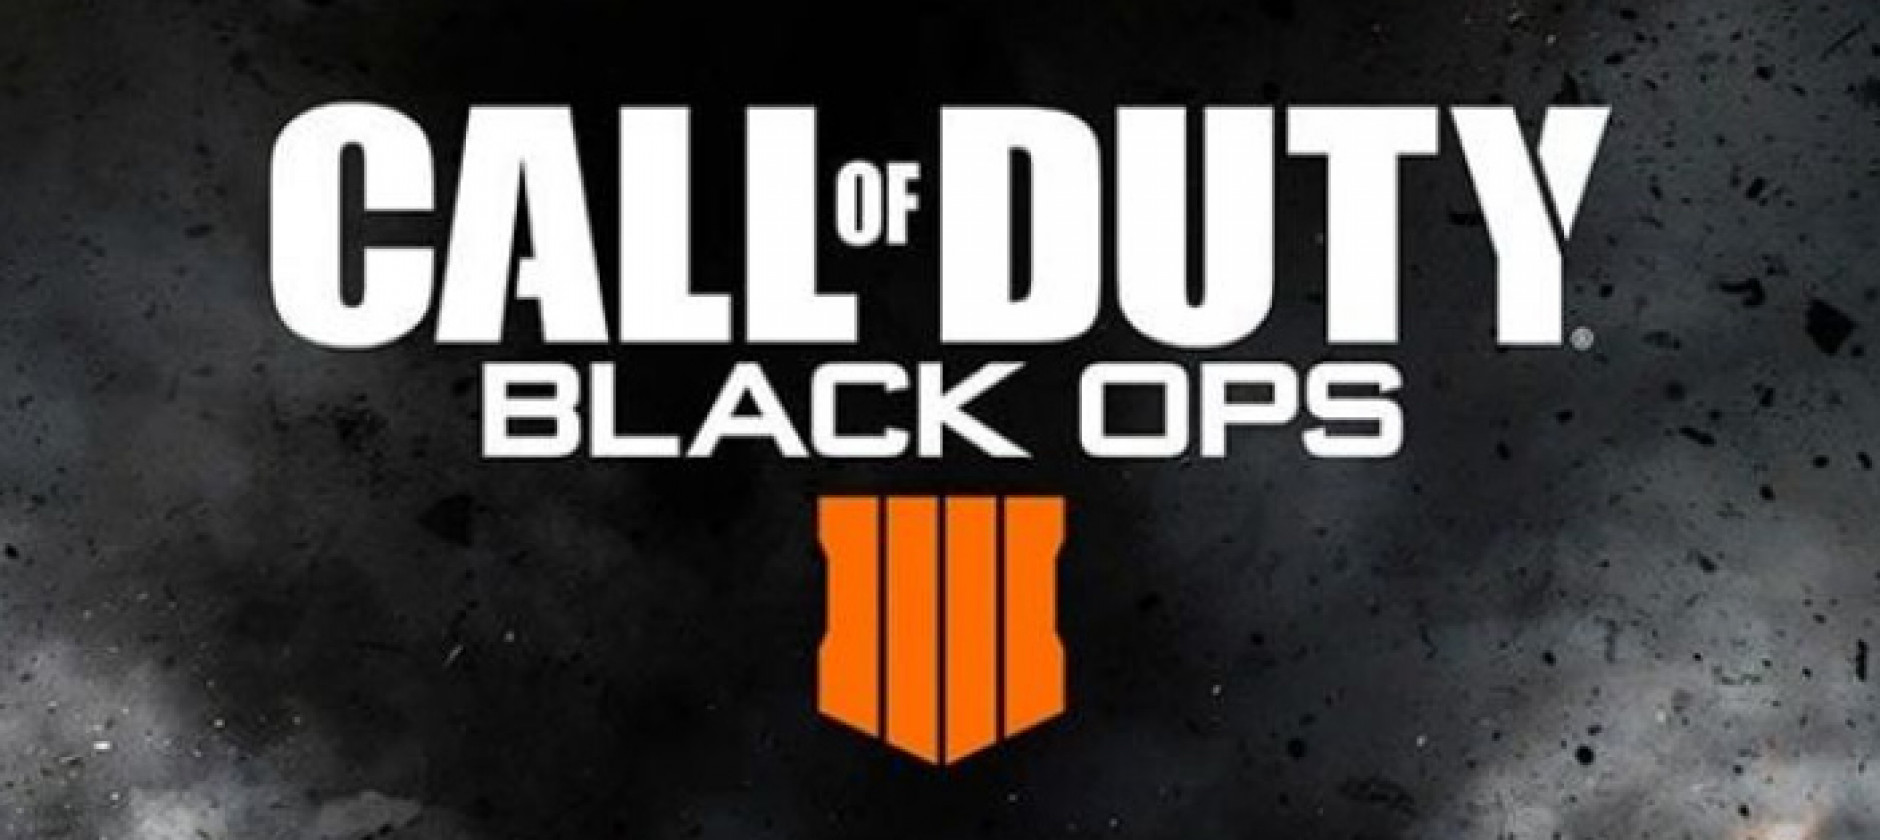 Arriva la battle royale di Call of Duty: Black Ops 4